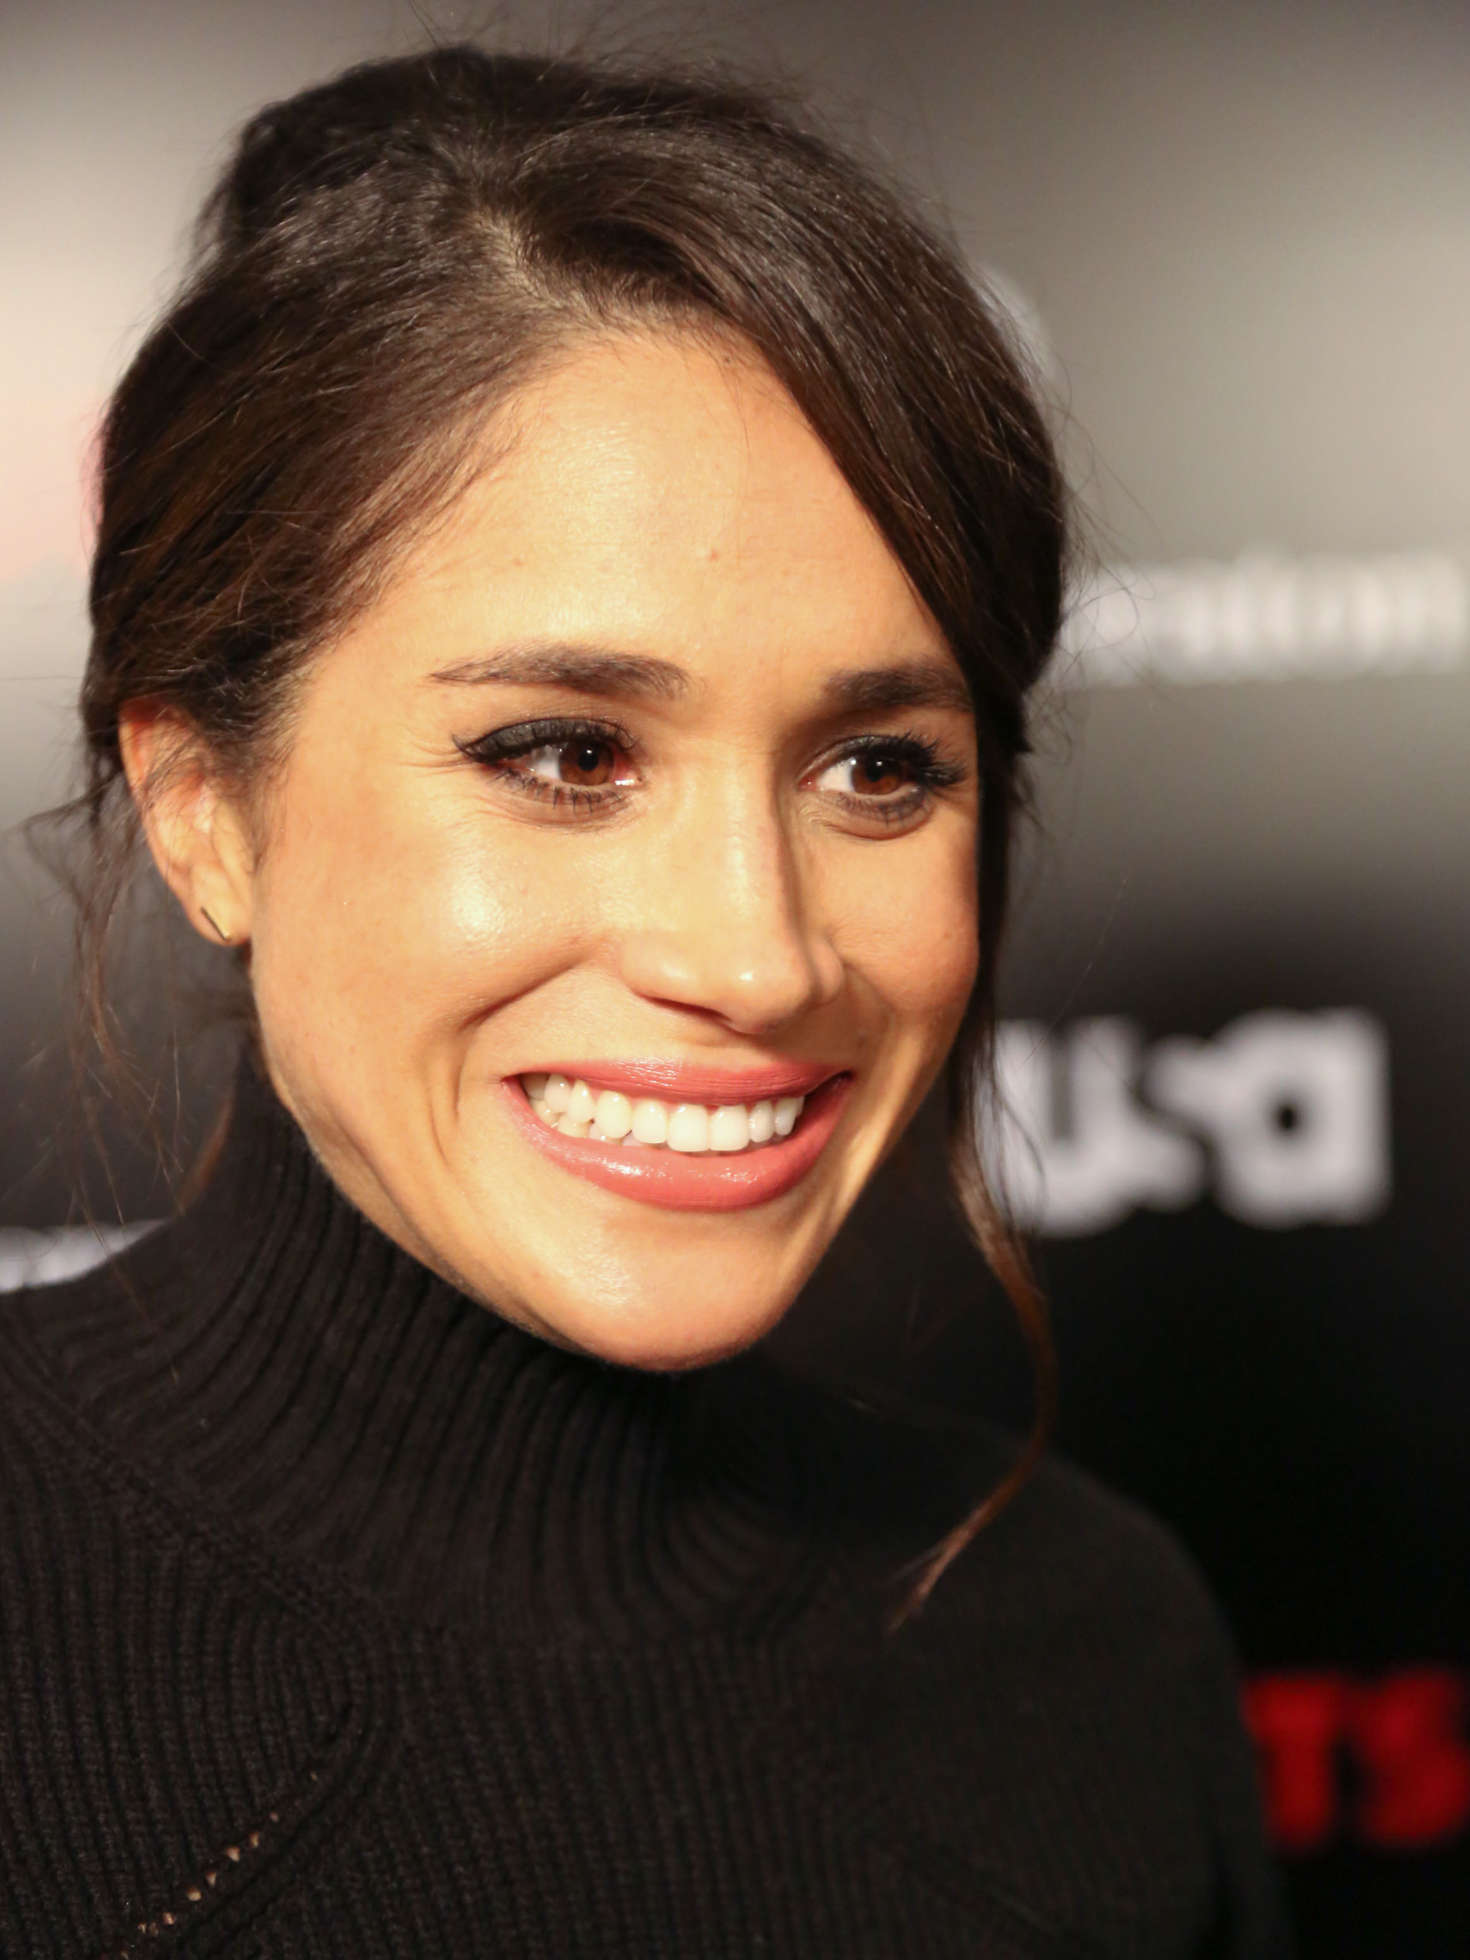 meghan markle - photo #29